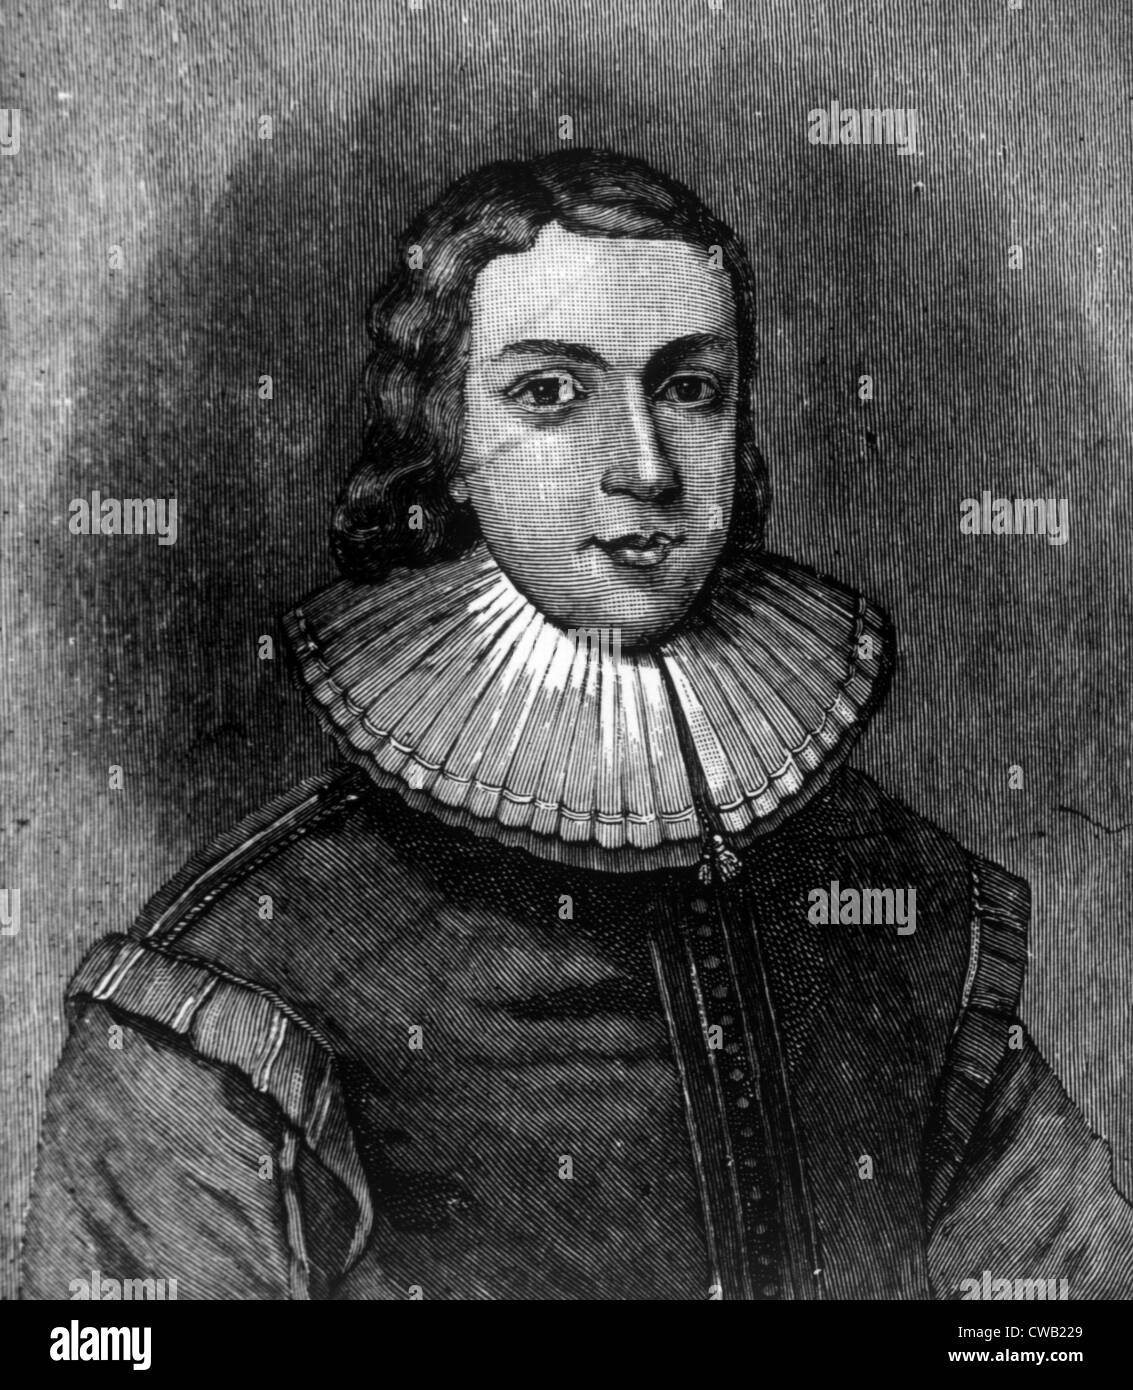 John Milton (1608-1674), author of 'Paradise Lost,' engraving depicting him at age 21, 1731 - Stock Image